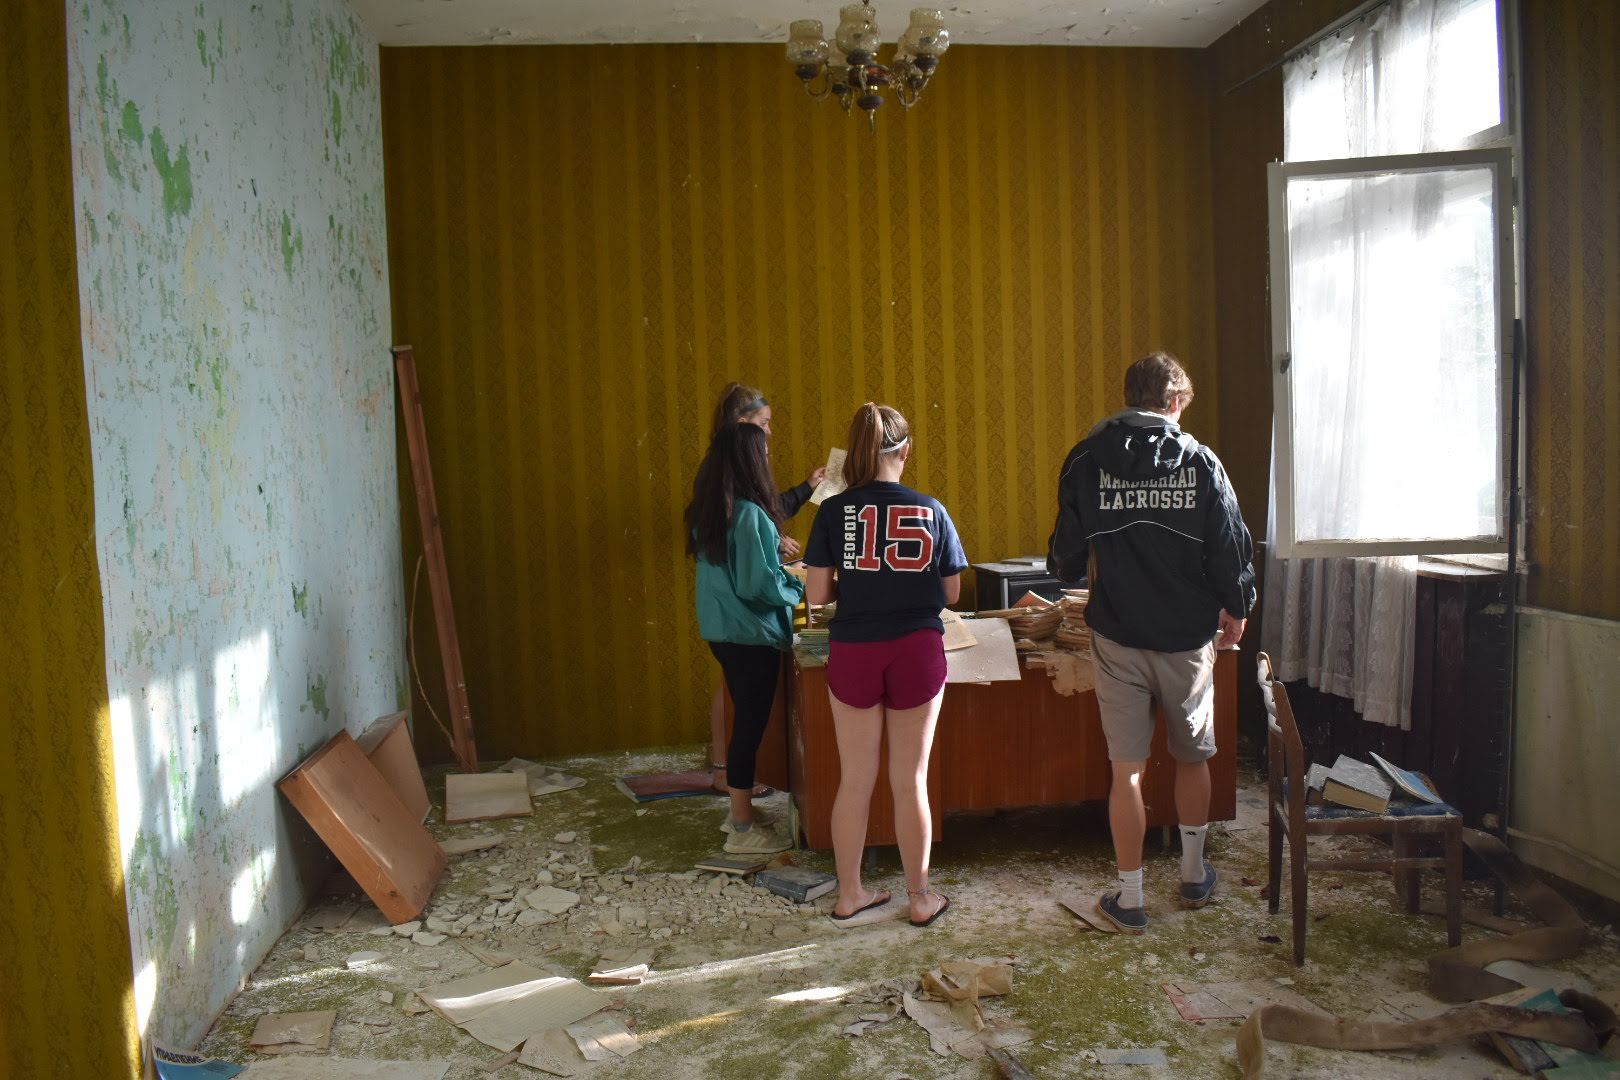 Exploring an abandoned room